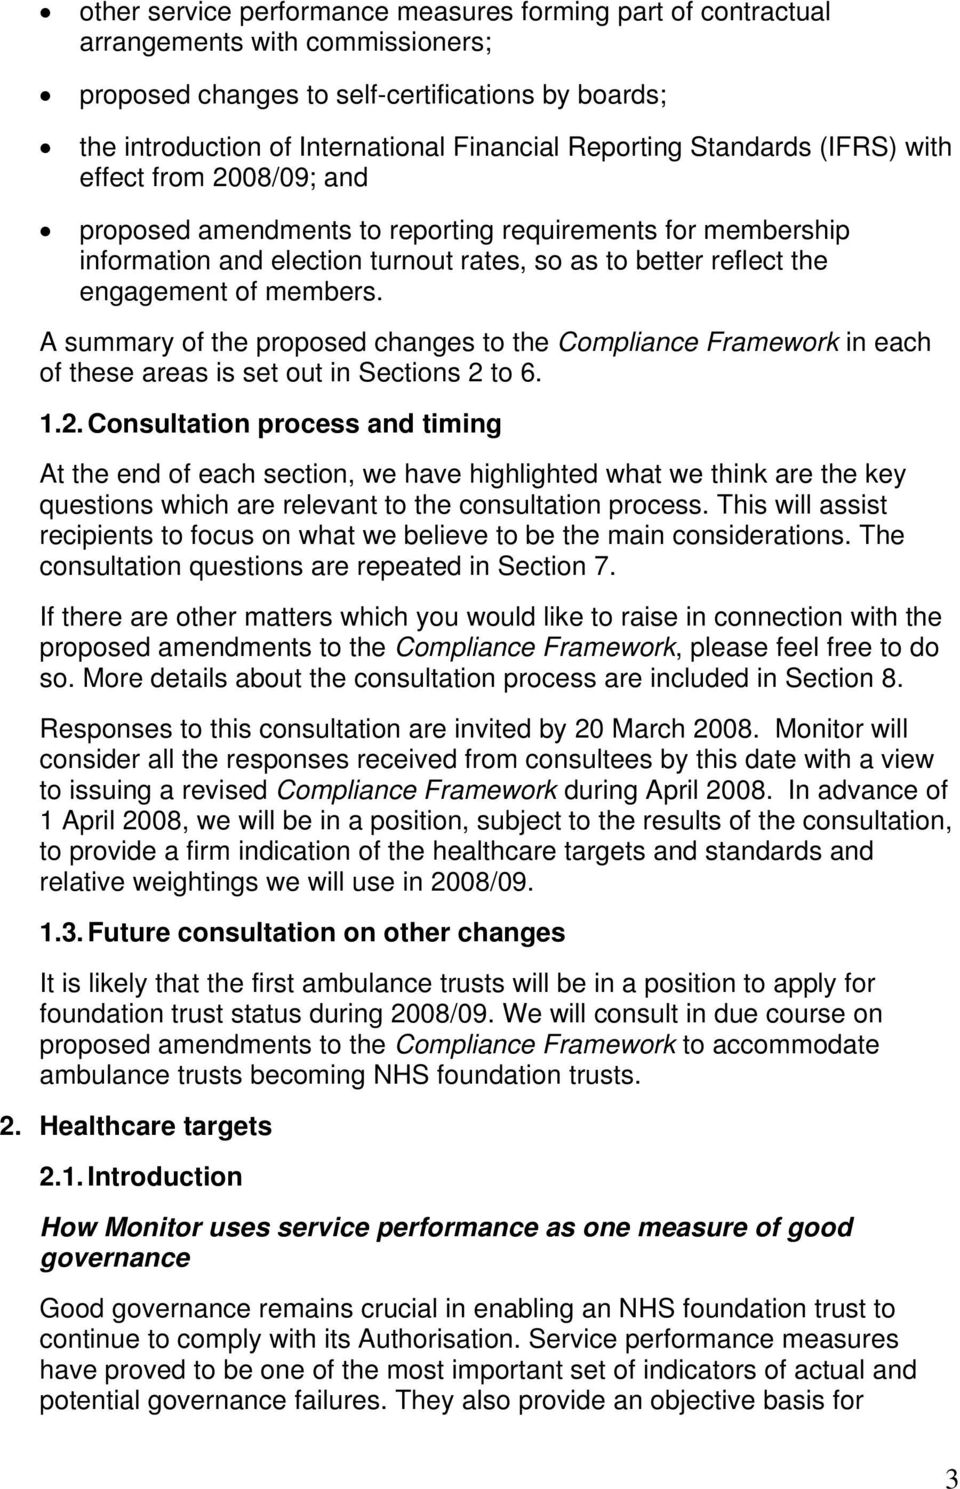 members. A summary of the proposed changes to the Compliance Framework in each of these areas is set out in Sections 2